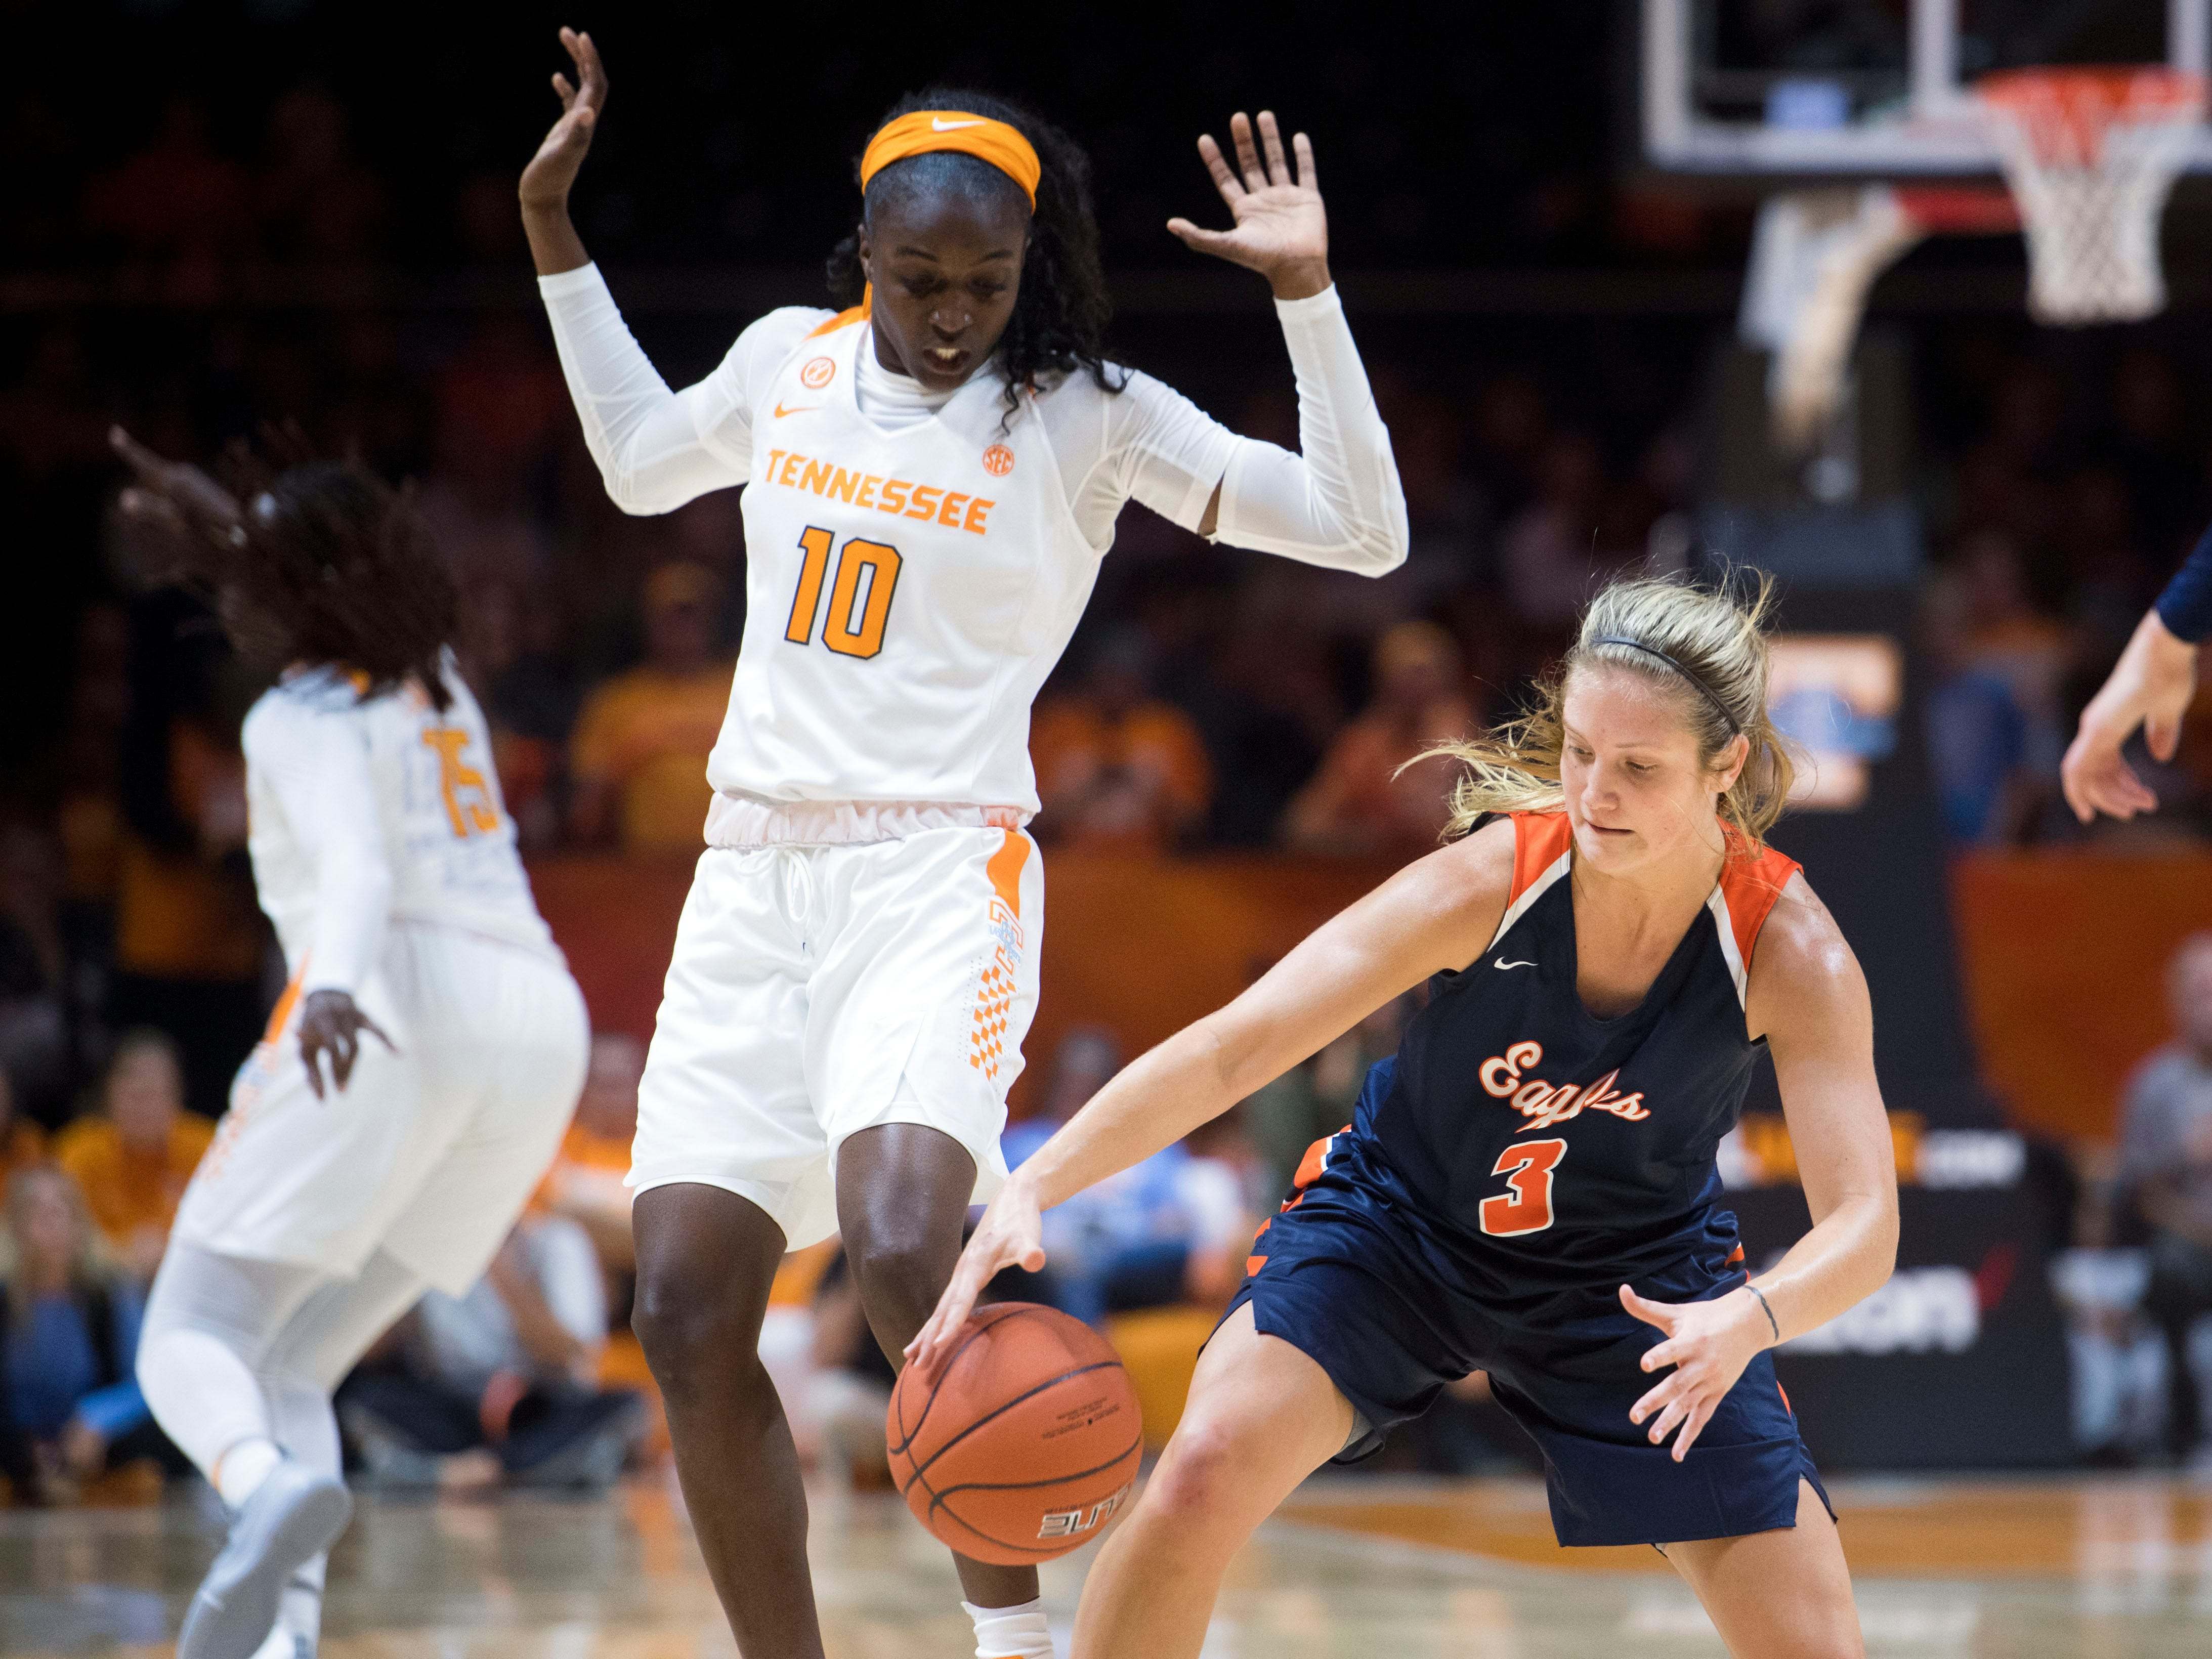 TennesseeÕs Meme Jackson (10) defends Carson-Newman's Addison Byrd (3) during an exhibition game at Thompson-Boling Arena on Monday, November 5, 2018.